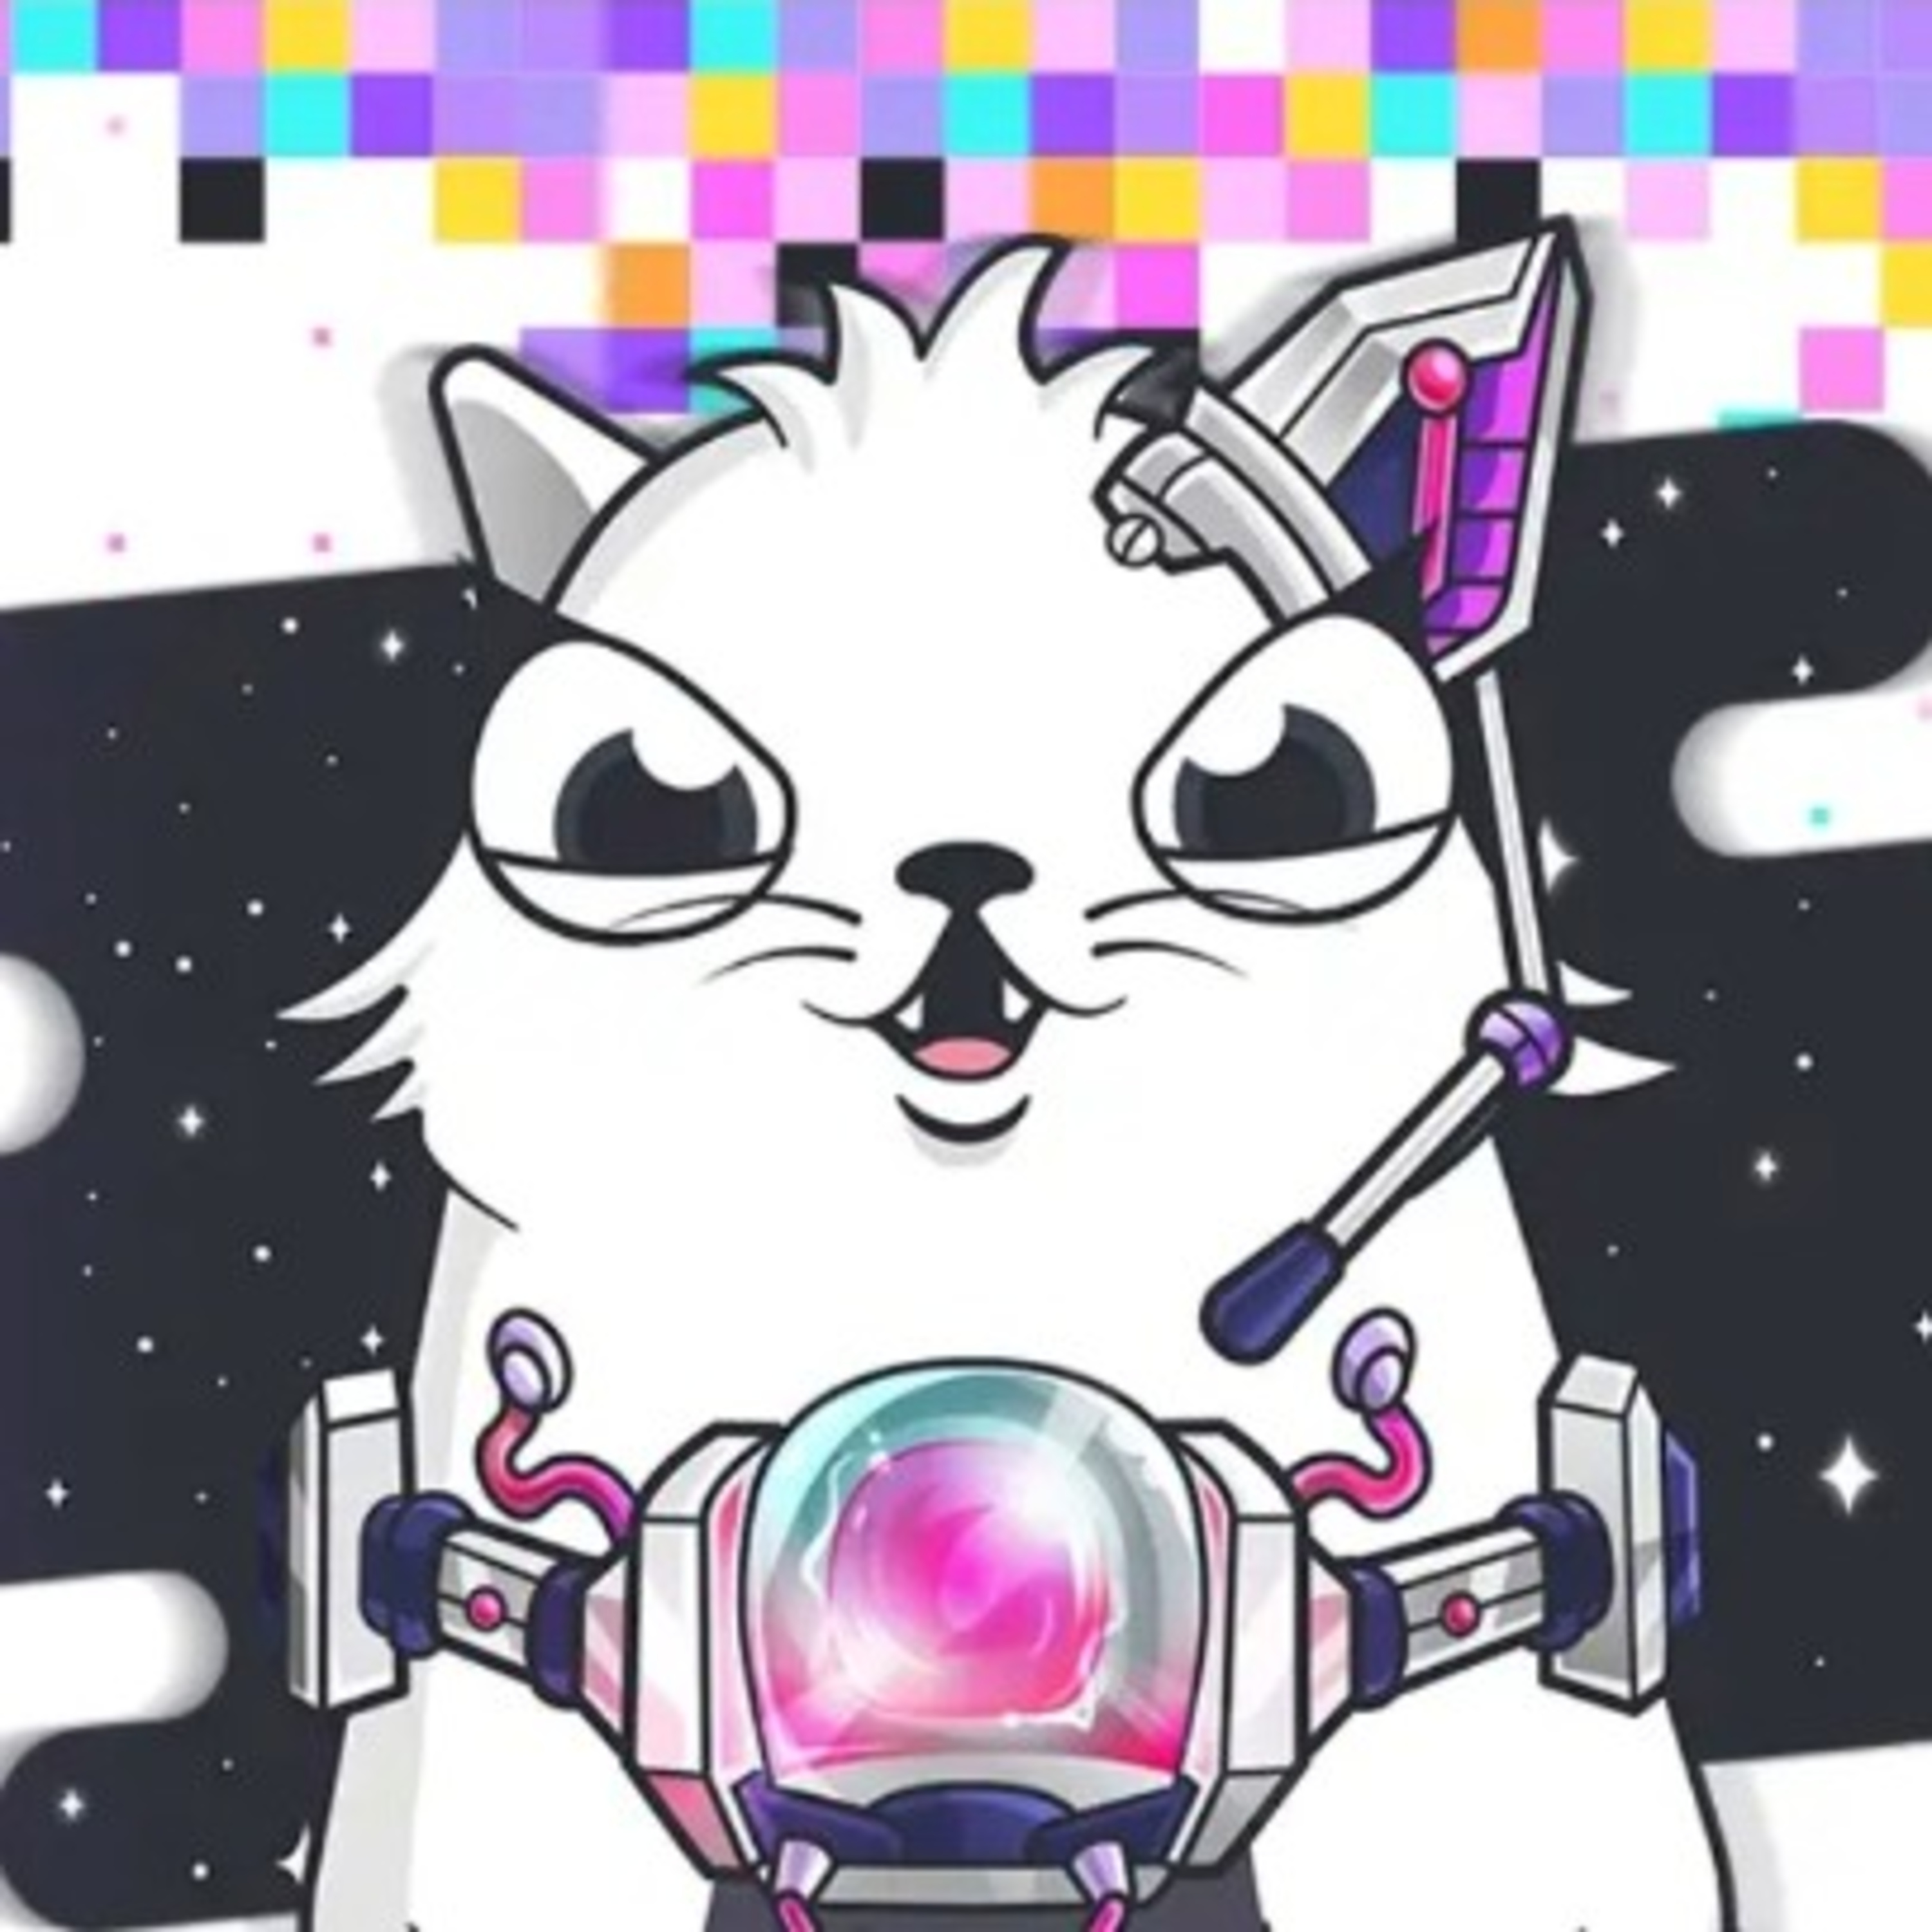 BCGW #44:  CryptoKitties' new robotic traits, the Dapper wallet & Cheeze Wizards!?